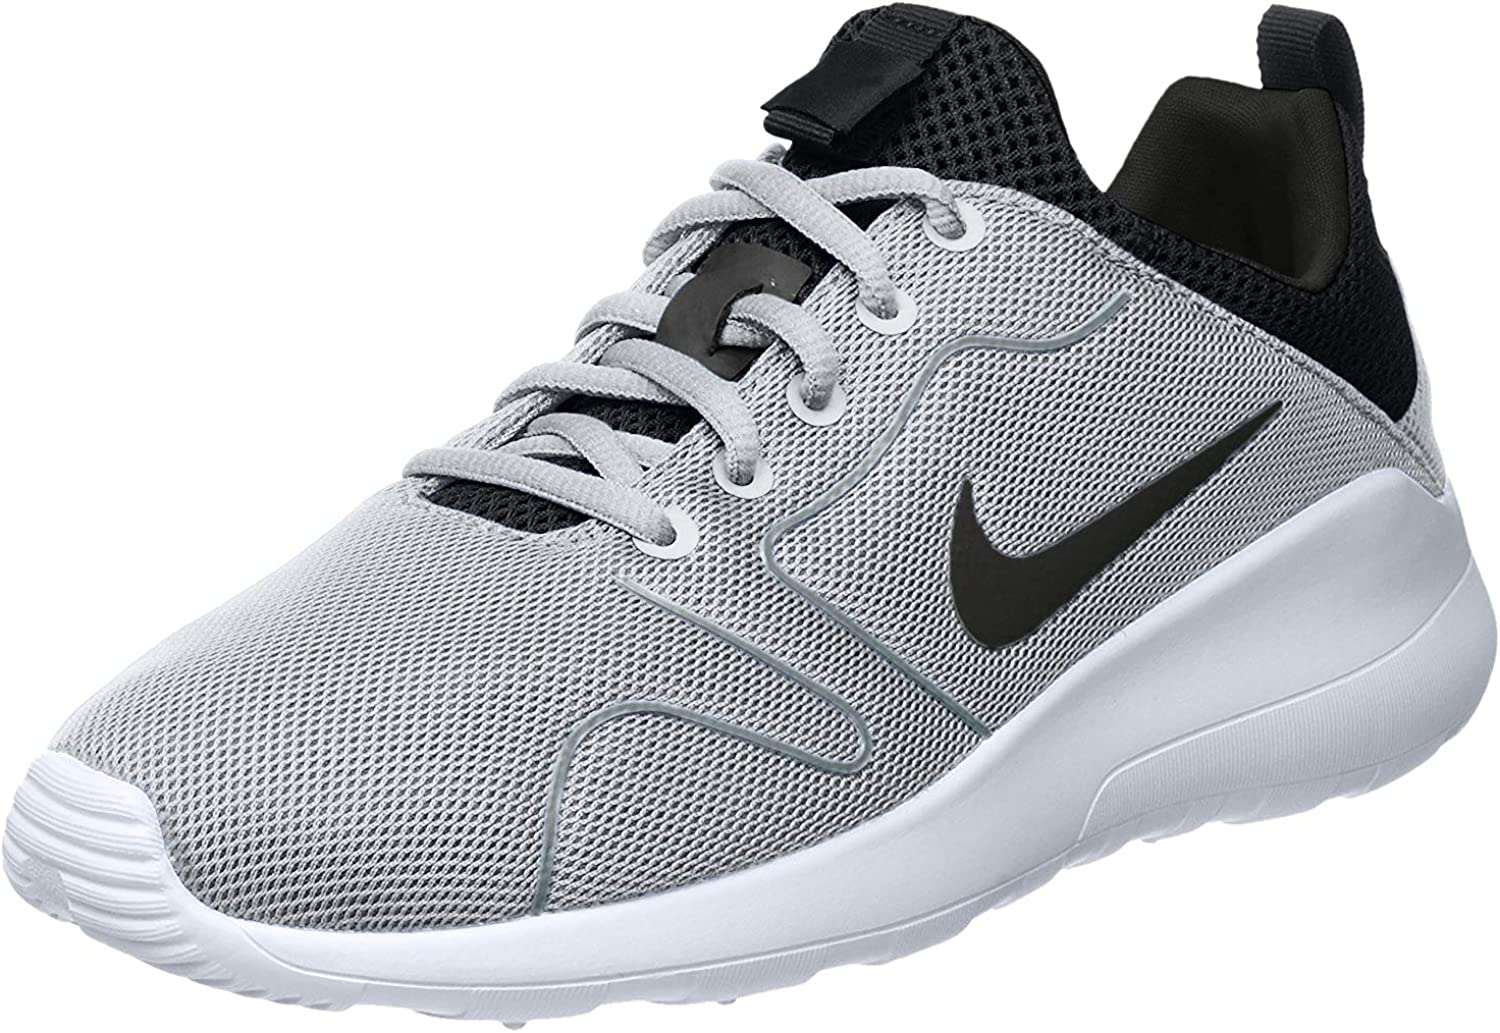 Nike Men s Kaishi 2.0 Wolf Grey Black White Running Shoes – 8 D M US